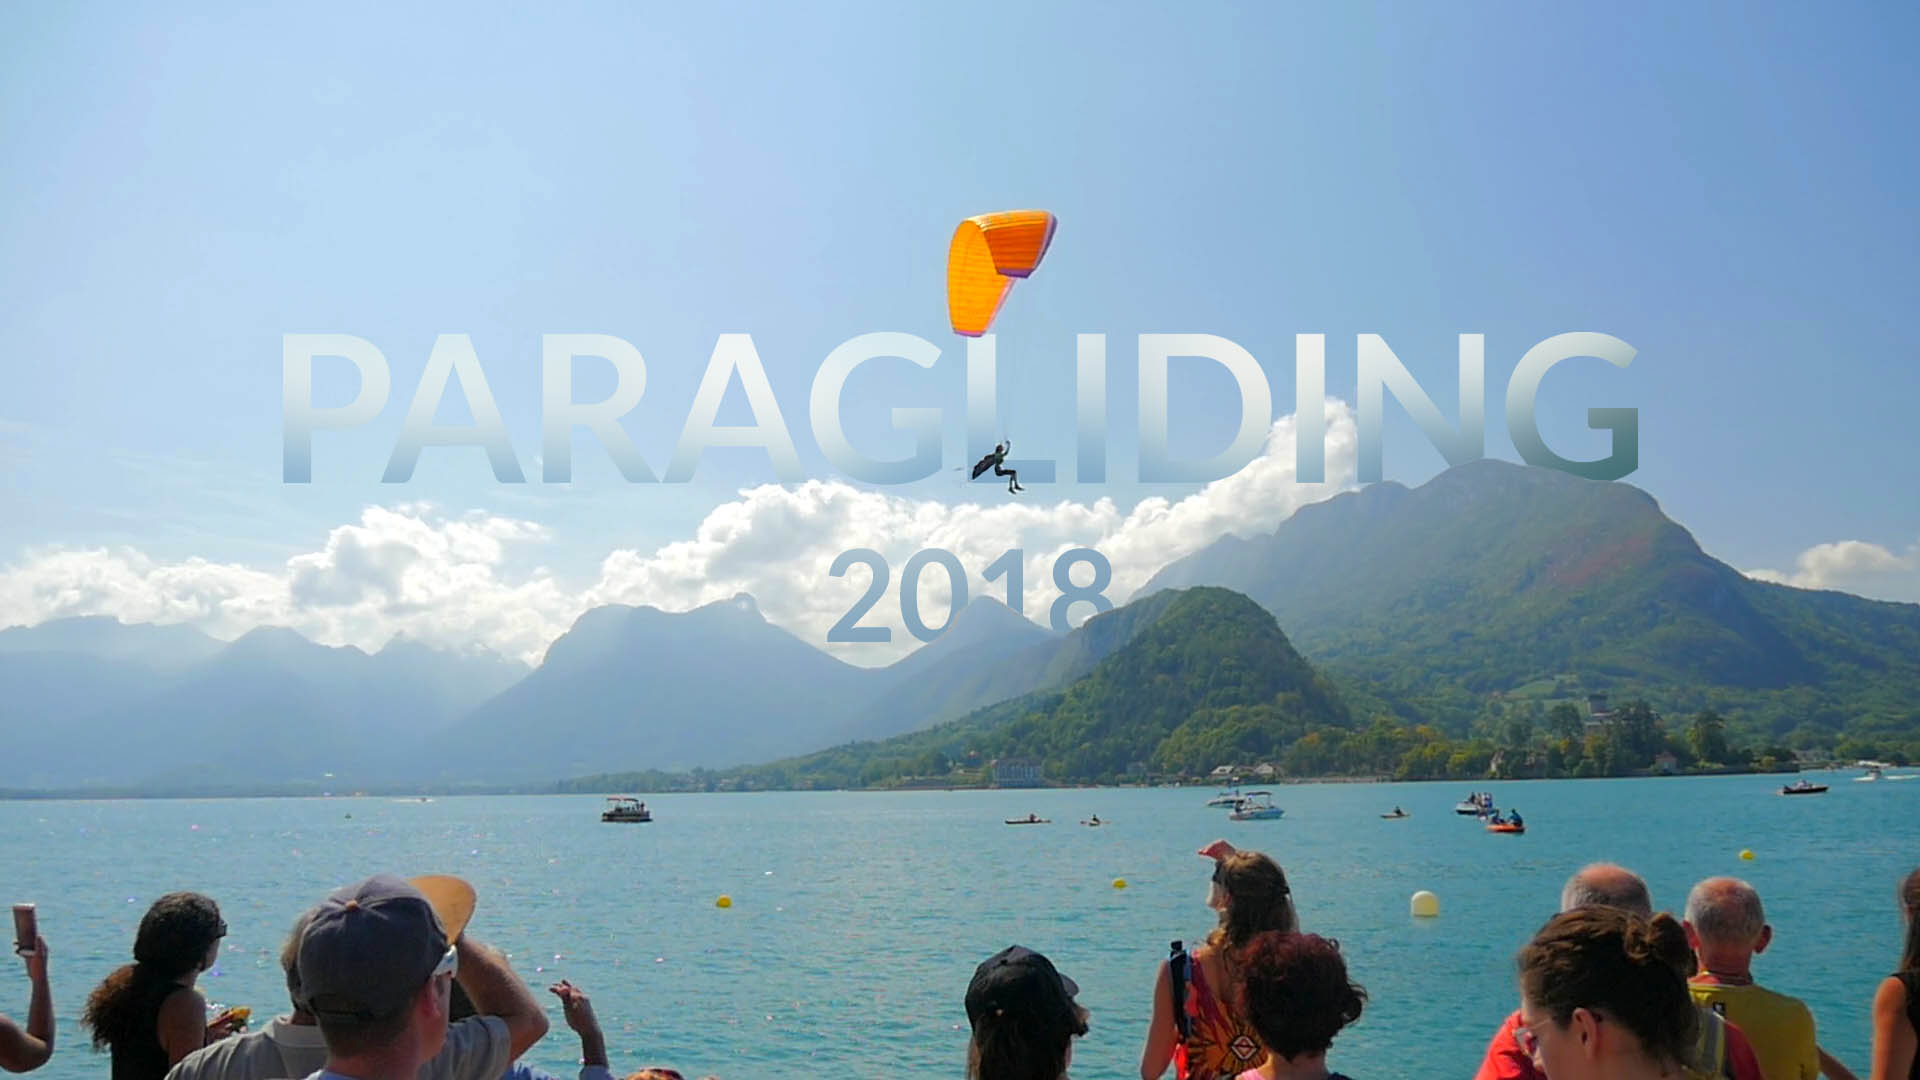 Paragliding best-of